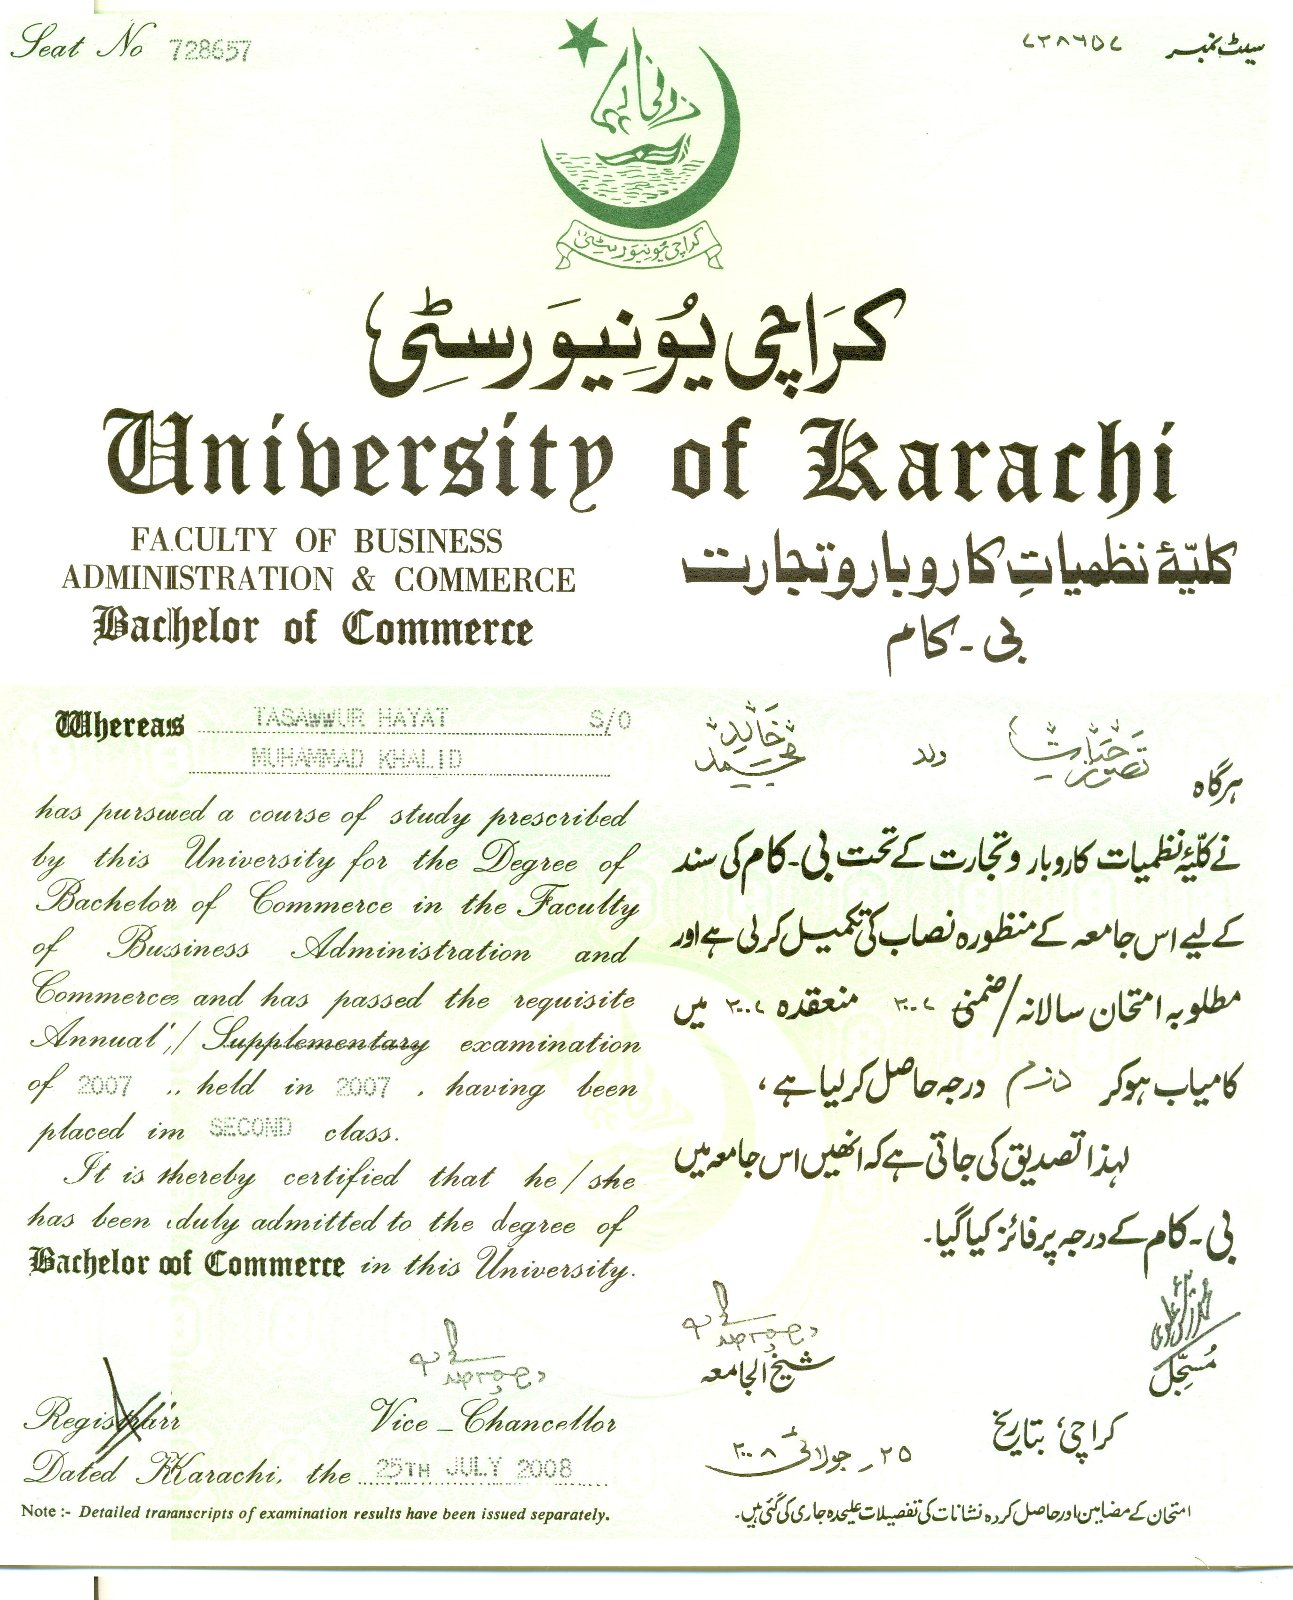 For the exams of graduation issued by the university of karachi